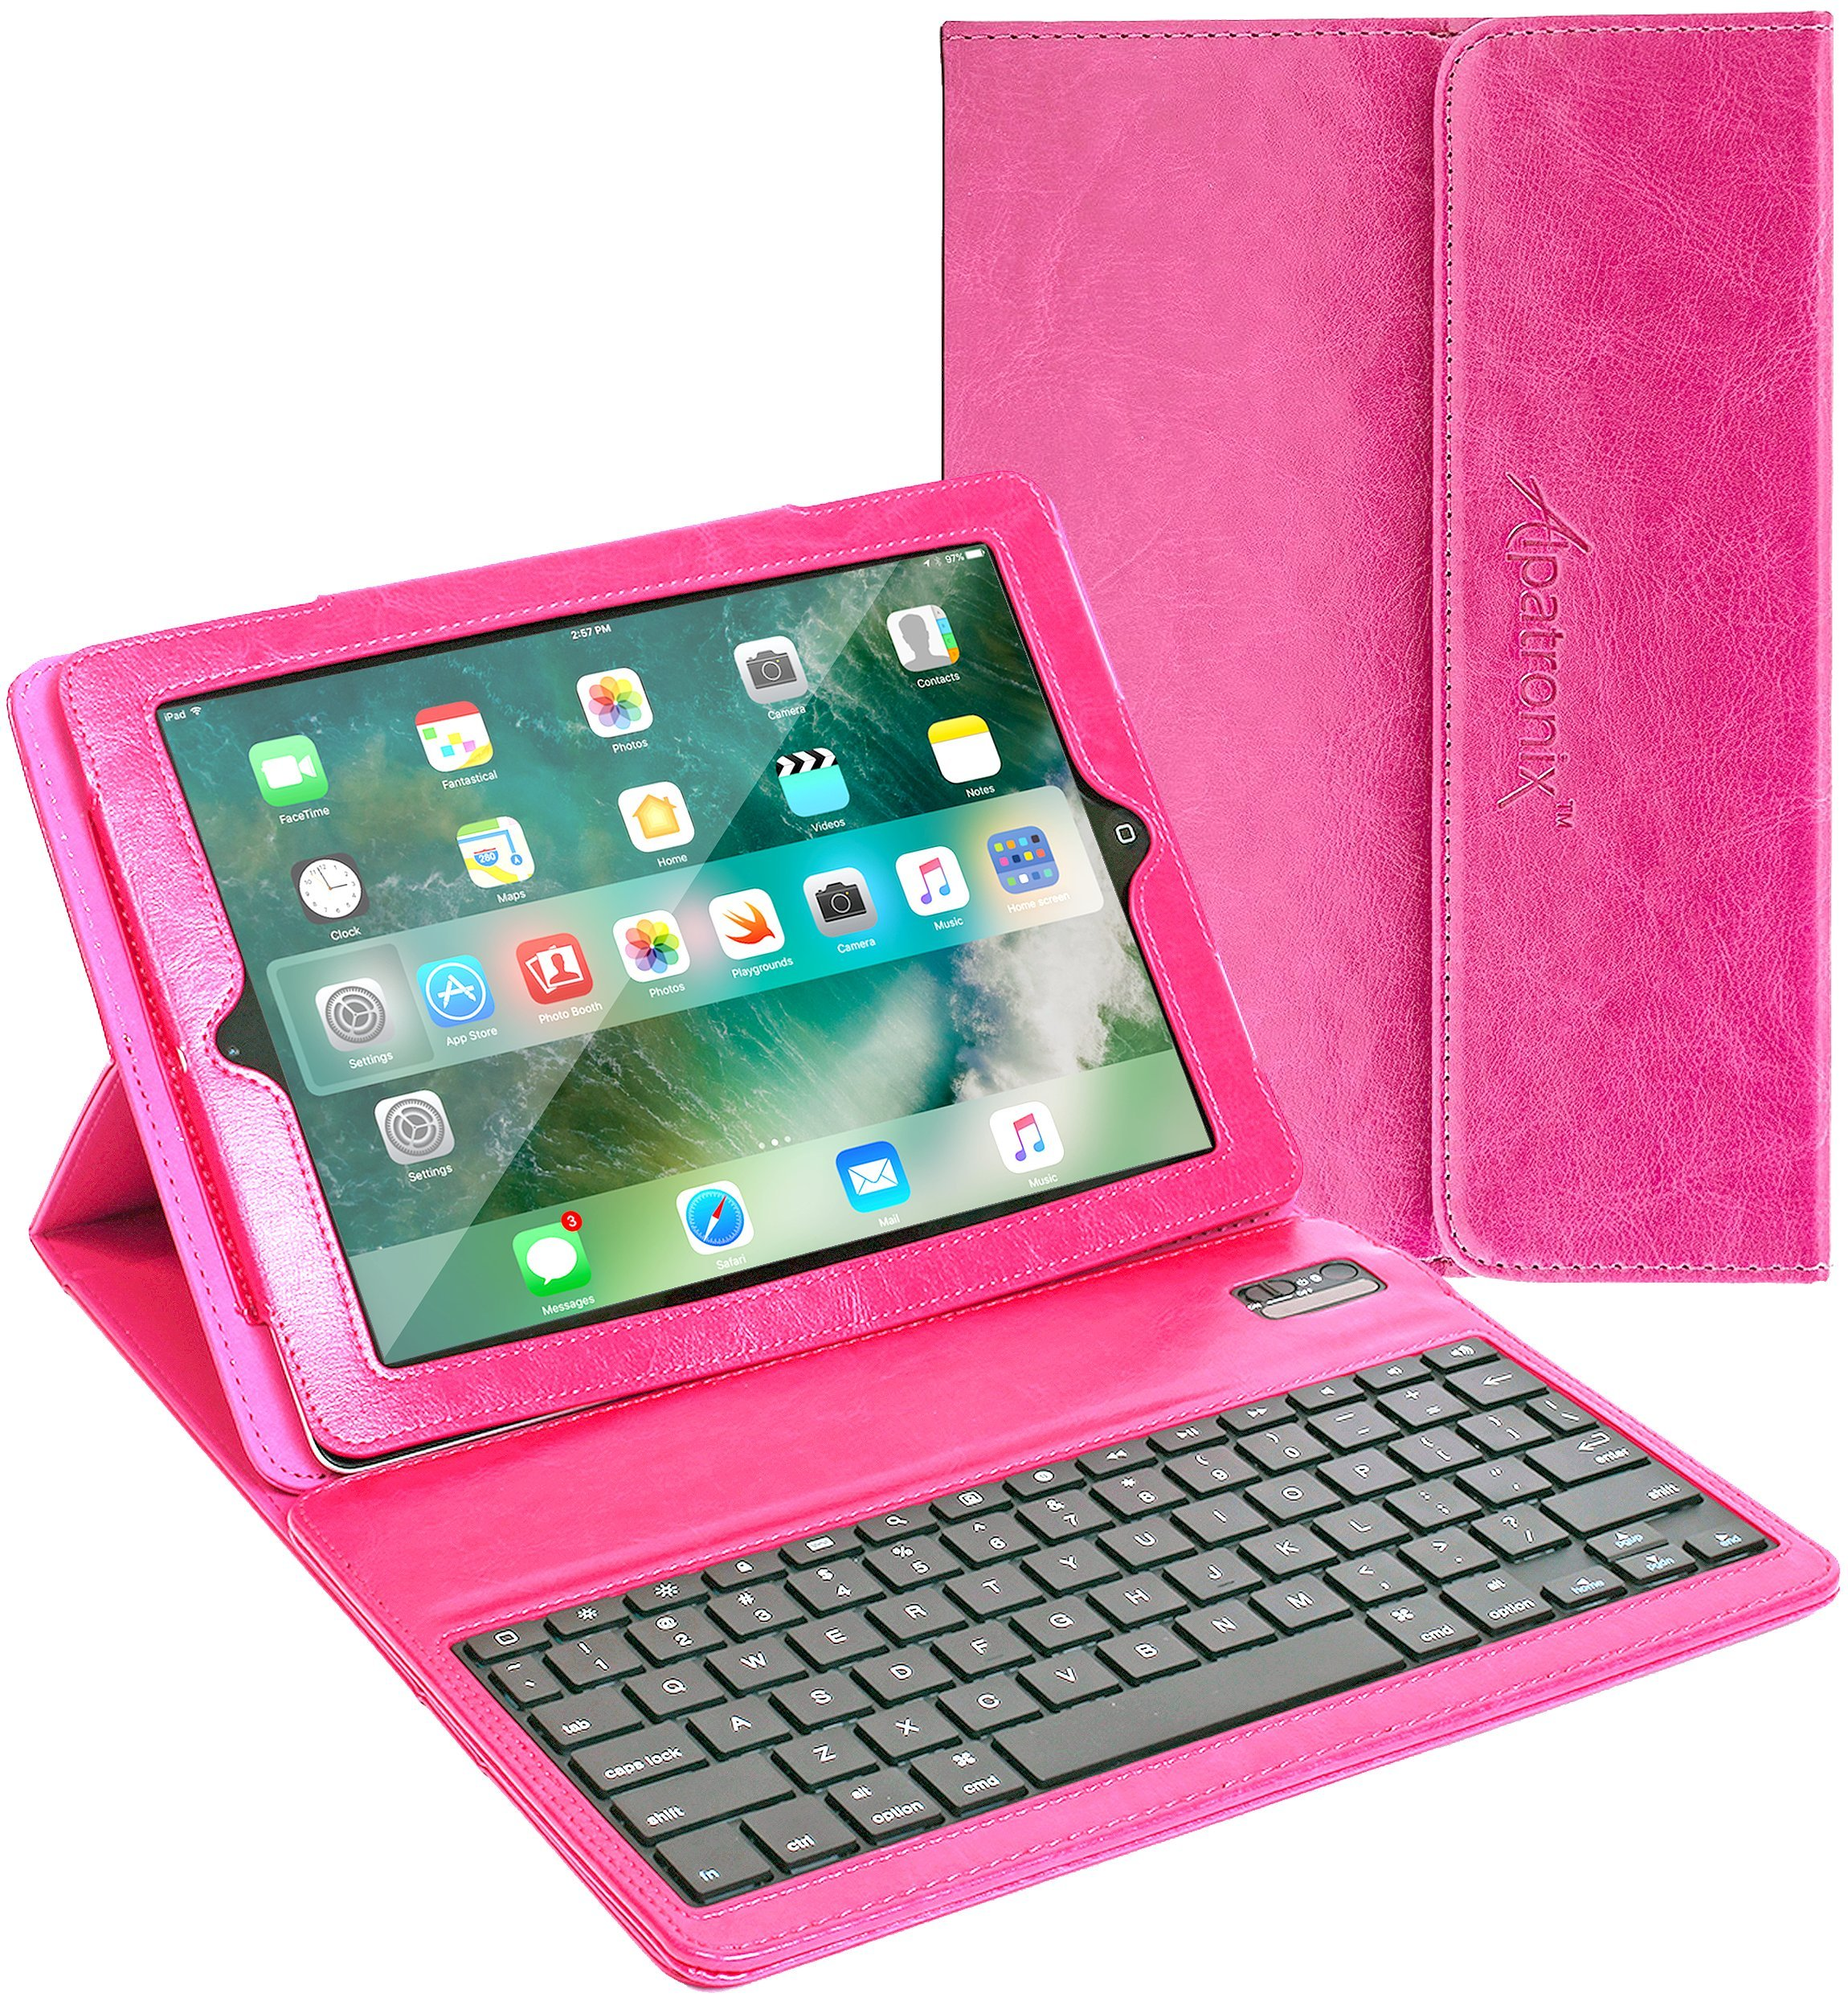 iPad Air/Pro 9.7 Keyboard + Leather Case, Alpatronix KX130 Bluetooth iPad Keyboard Smart Case w/Wireless Keyboard, Folio Protection & Built-in Stand for iPad Air 1, 2, iPad Pro 9.7-inch - (Pink)